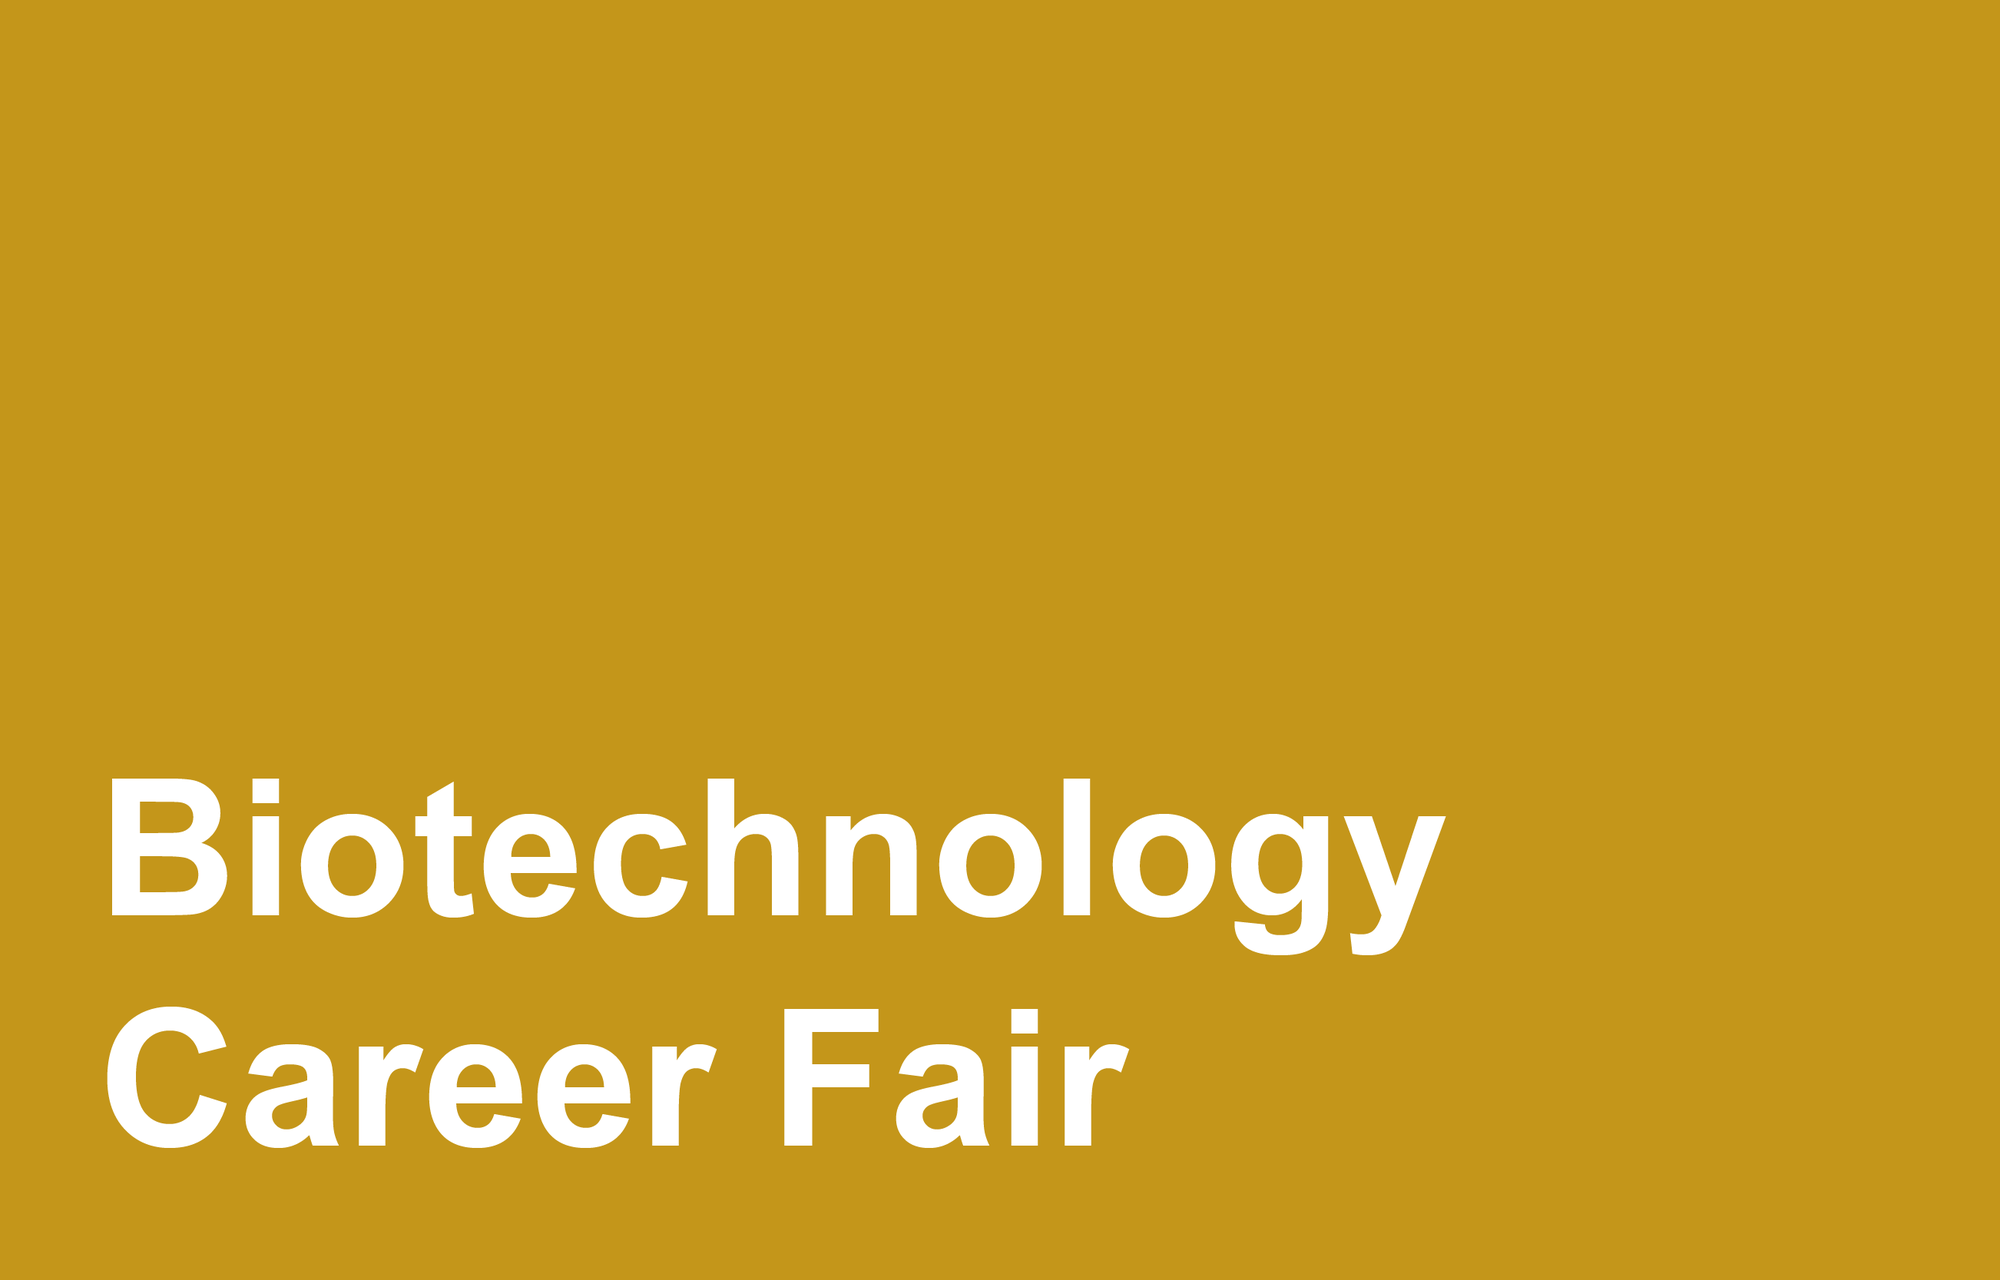 Biotechnology Career Fair